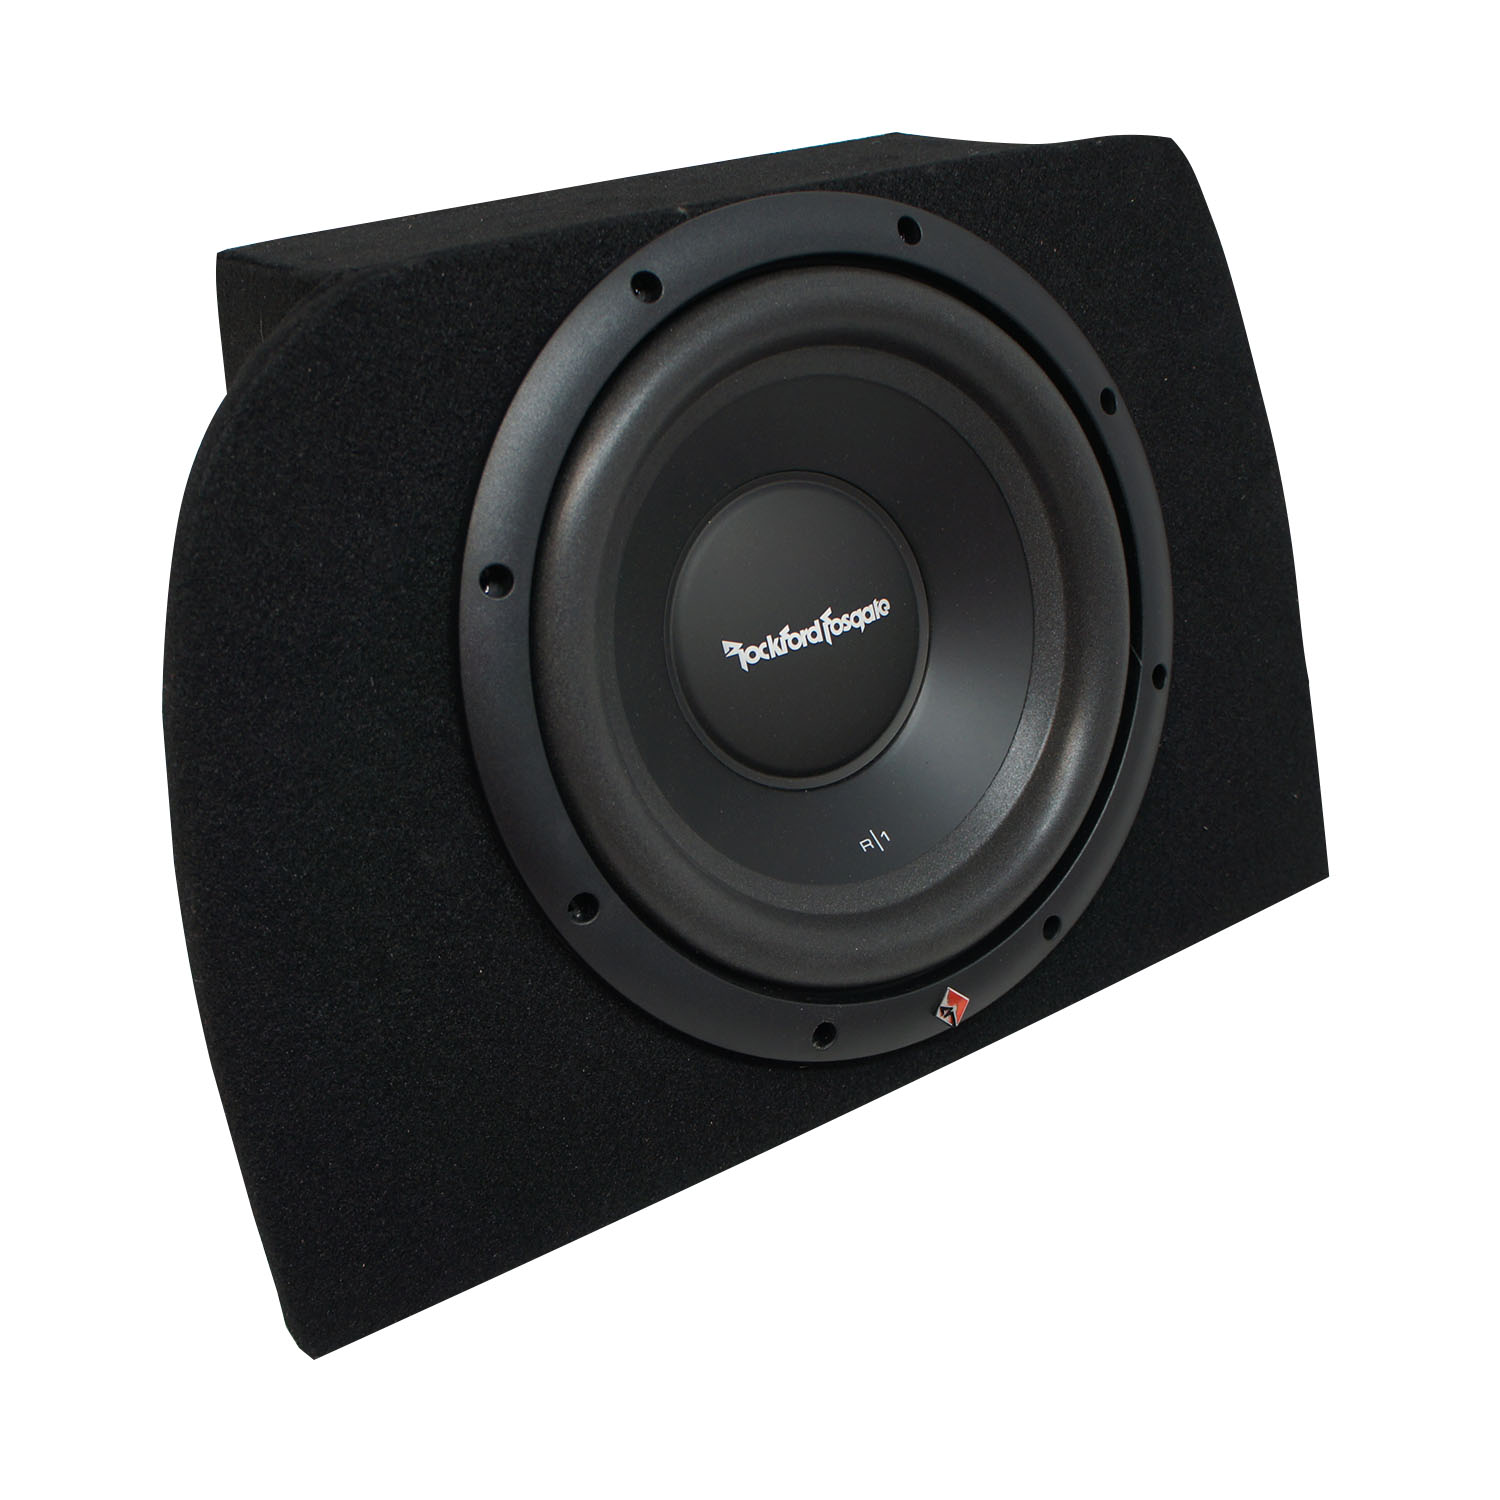 "1990-2005 Mazda Miata MX-5 Convertible Rockford Prime R1S410 Single 10"" Sub Box Enclosure - Final 4 Ohm"